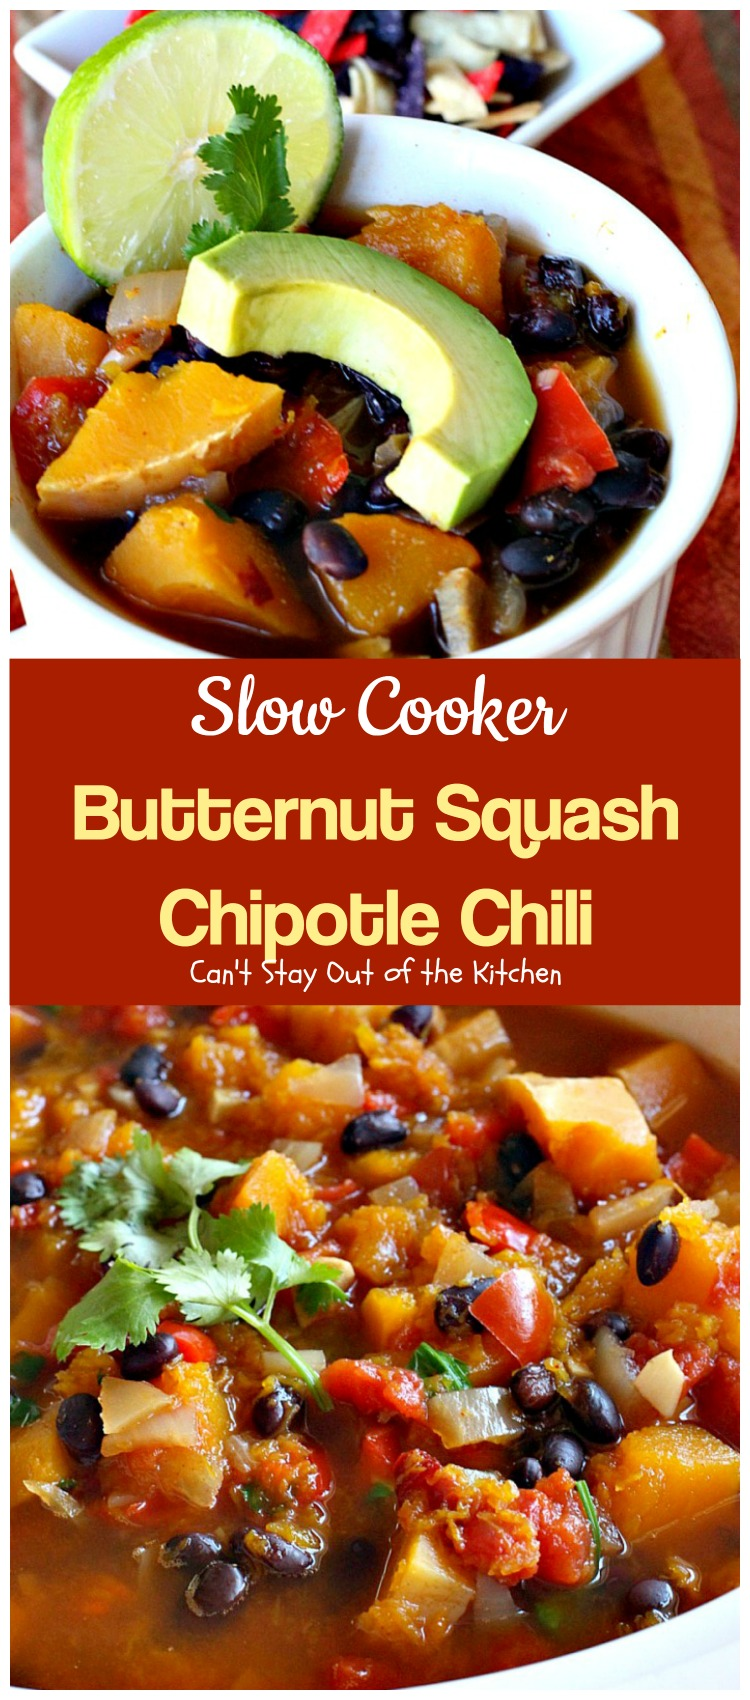 Slow Cooker Butternut Squash Chipotle Chili | Can't Stay Out of the ...